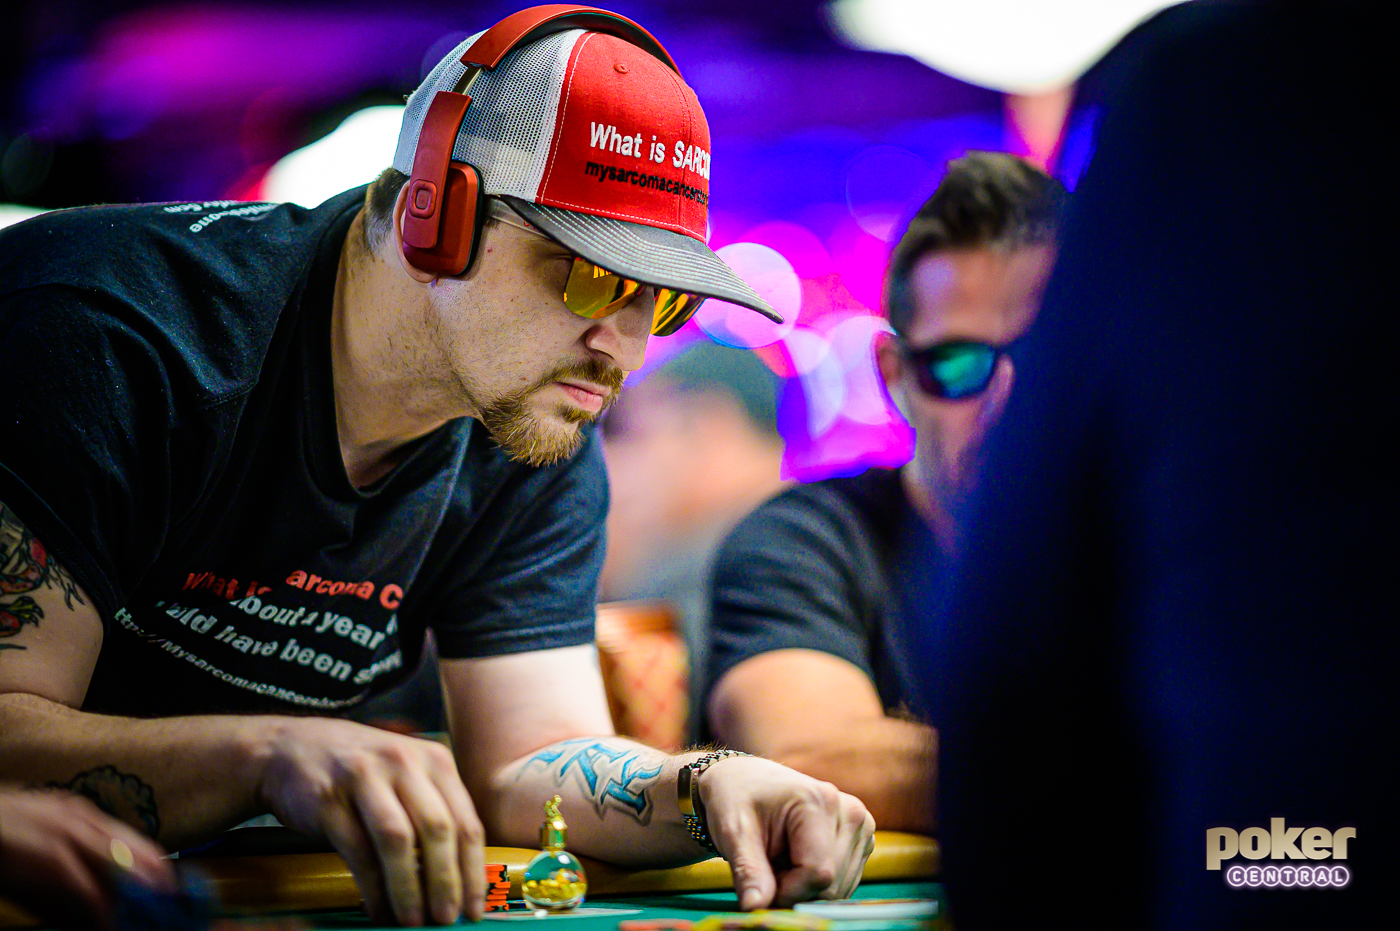 Kevin Roster is locked in and determined to make a deep run in the 2019 WSOP Main Event, his last shot at poker glory.